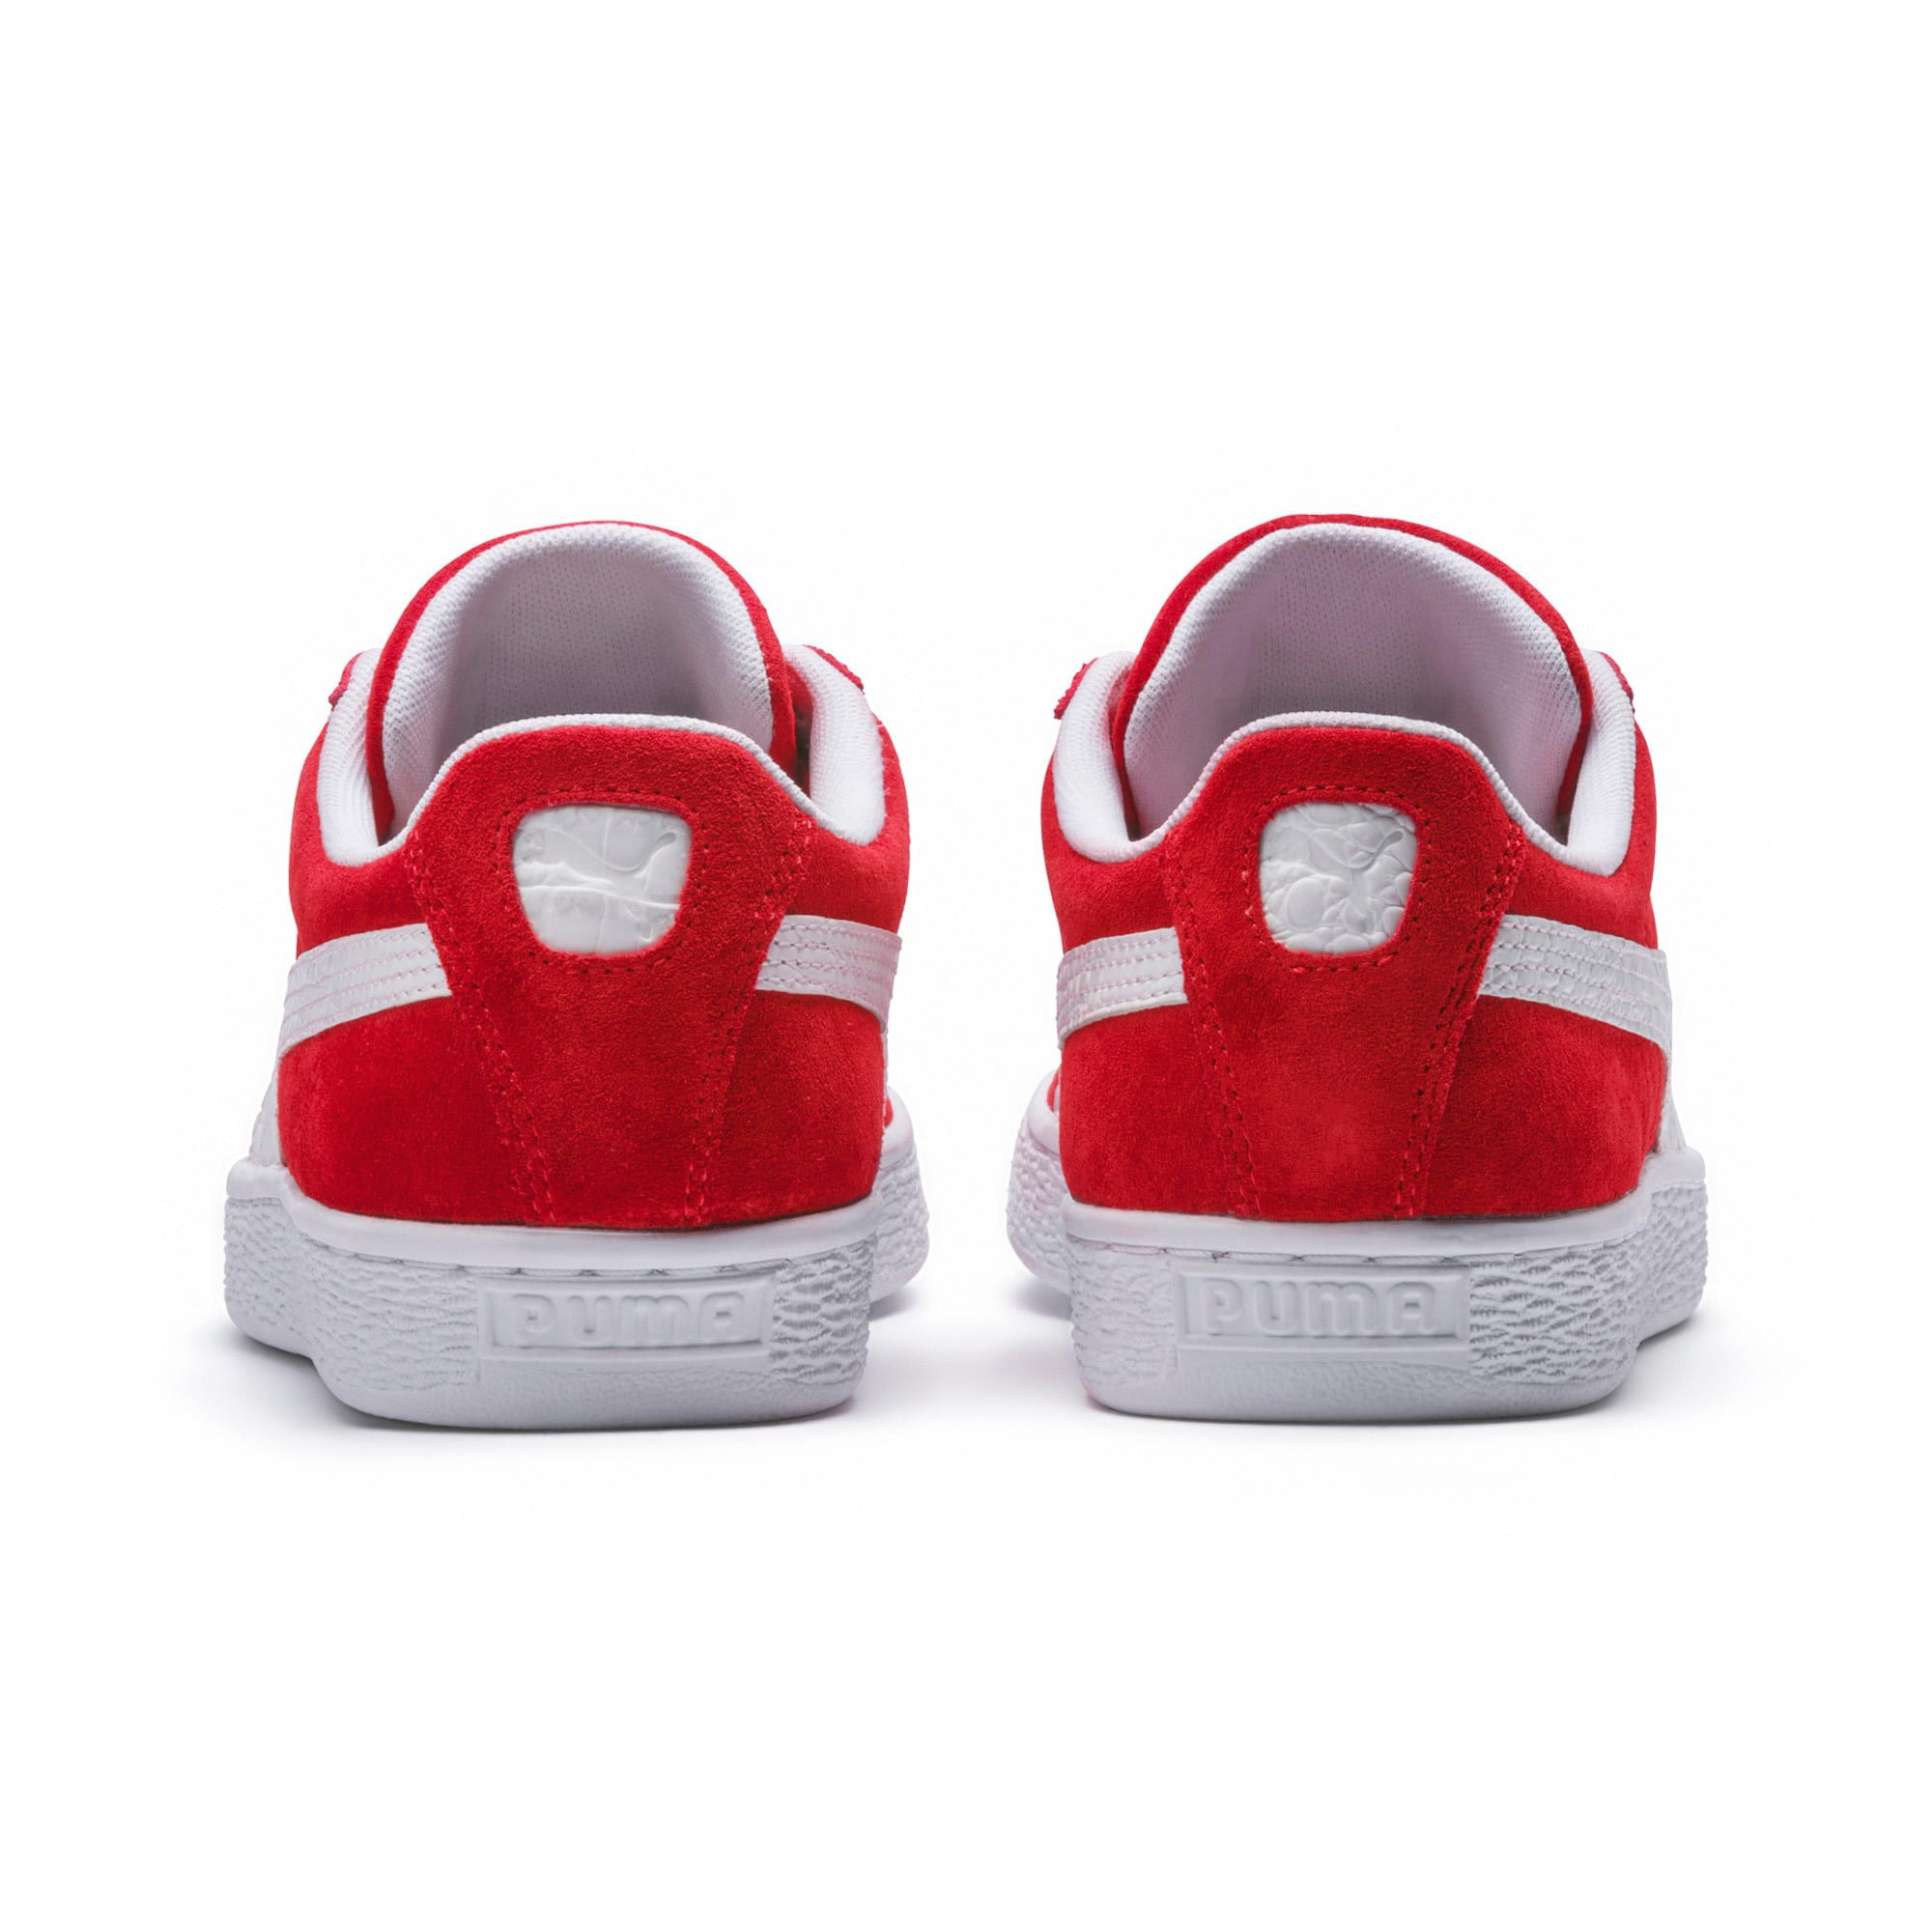 Thumbnail 4 of Suede Classic B-BOY Fabulous Trainers, Flame Scarlet-Puma White, medium-IND